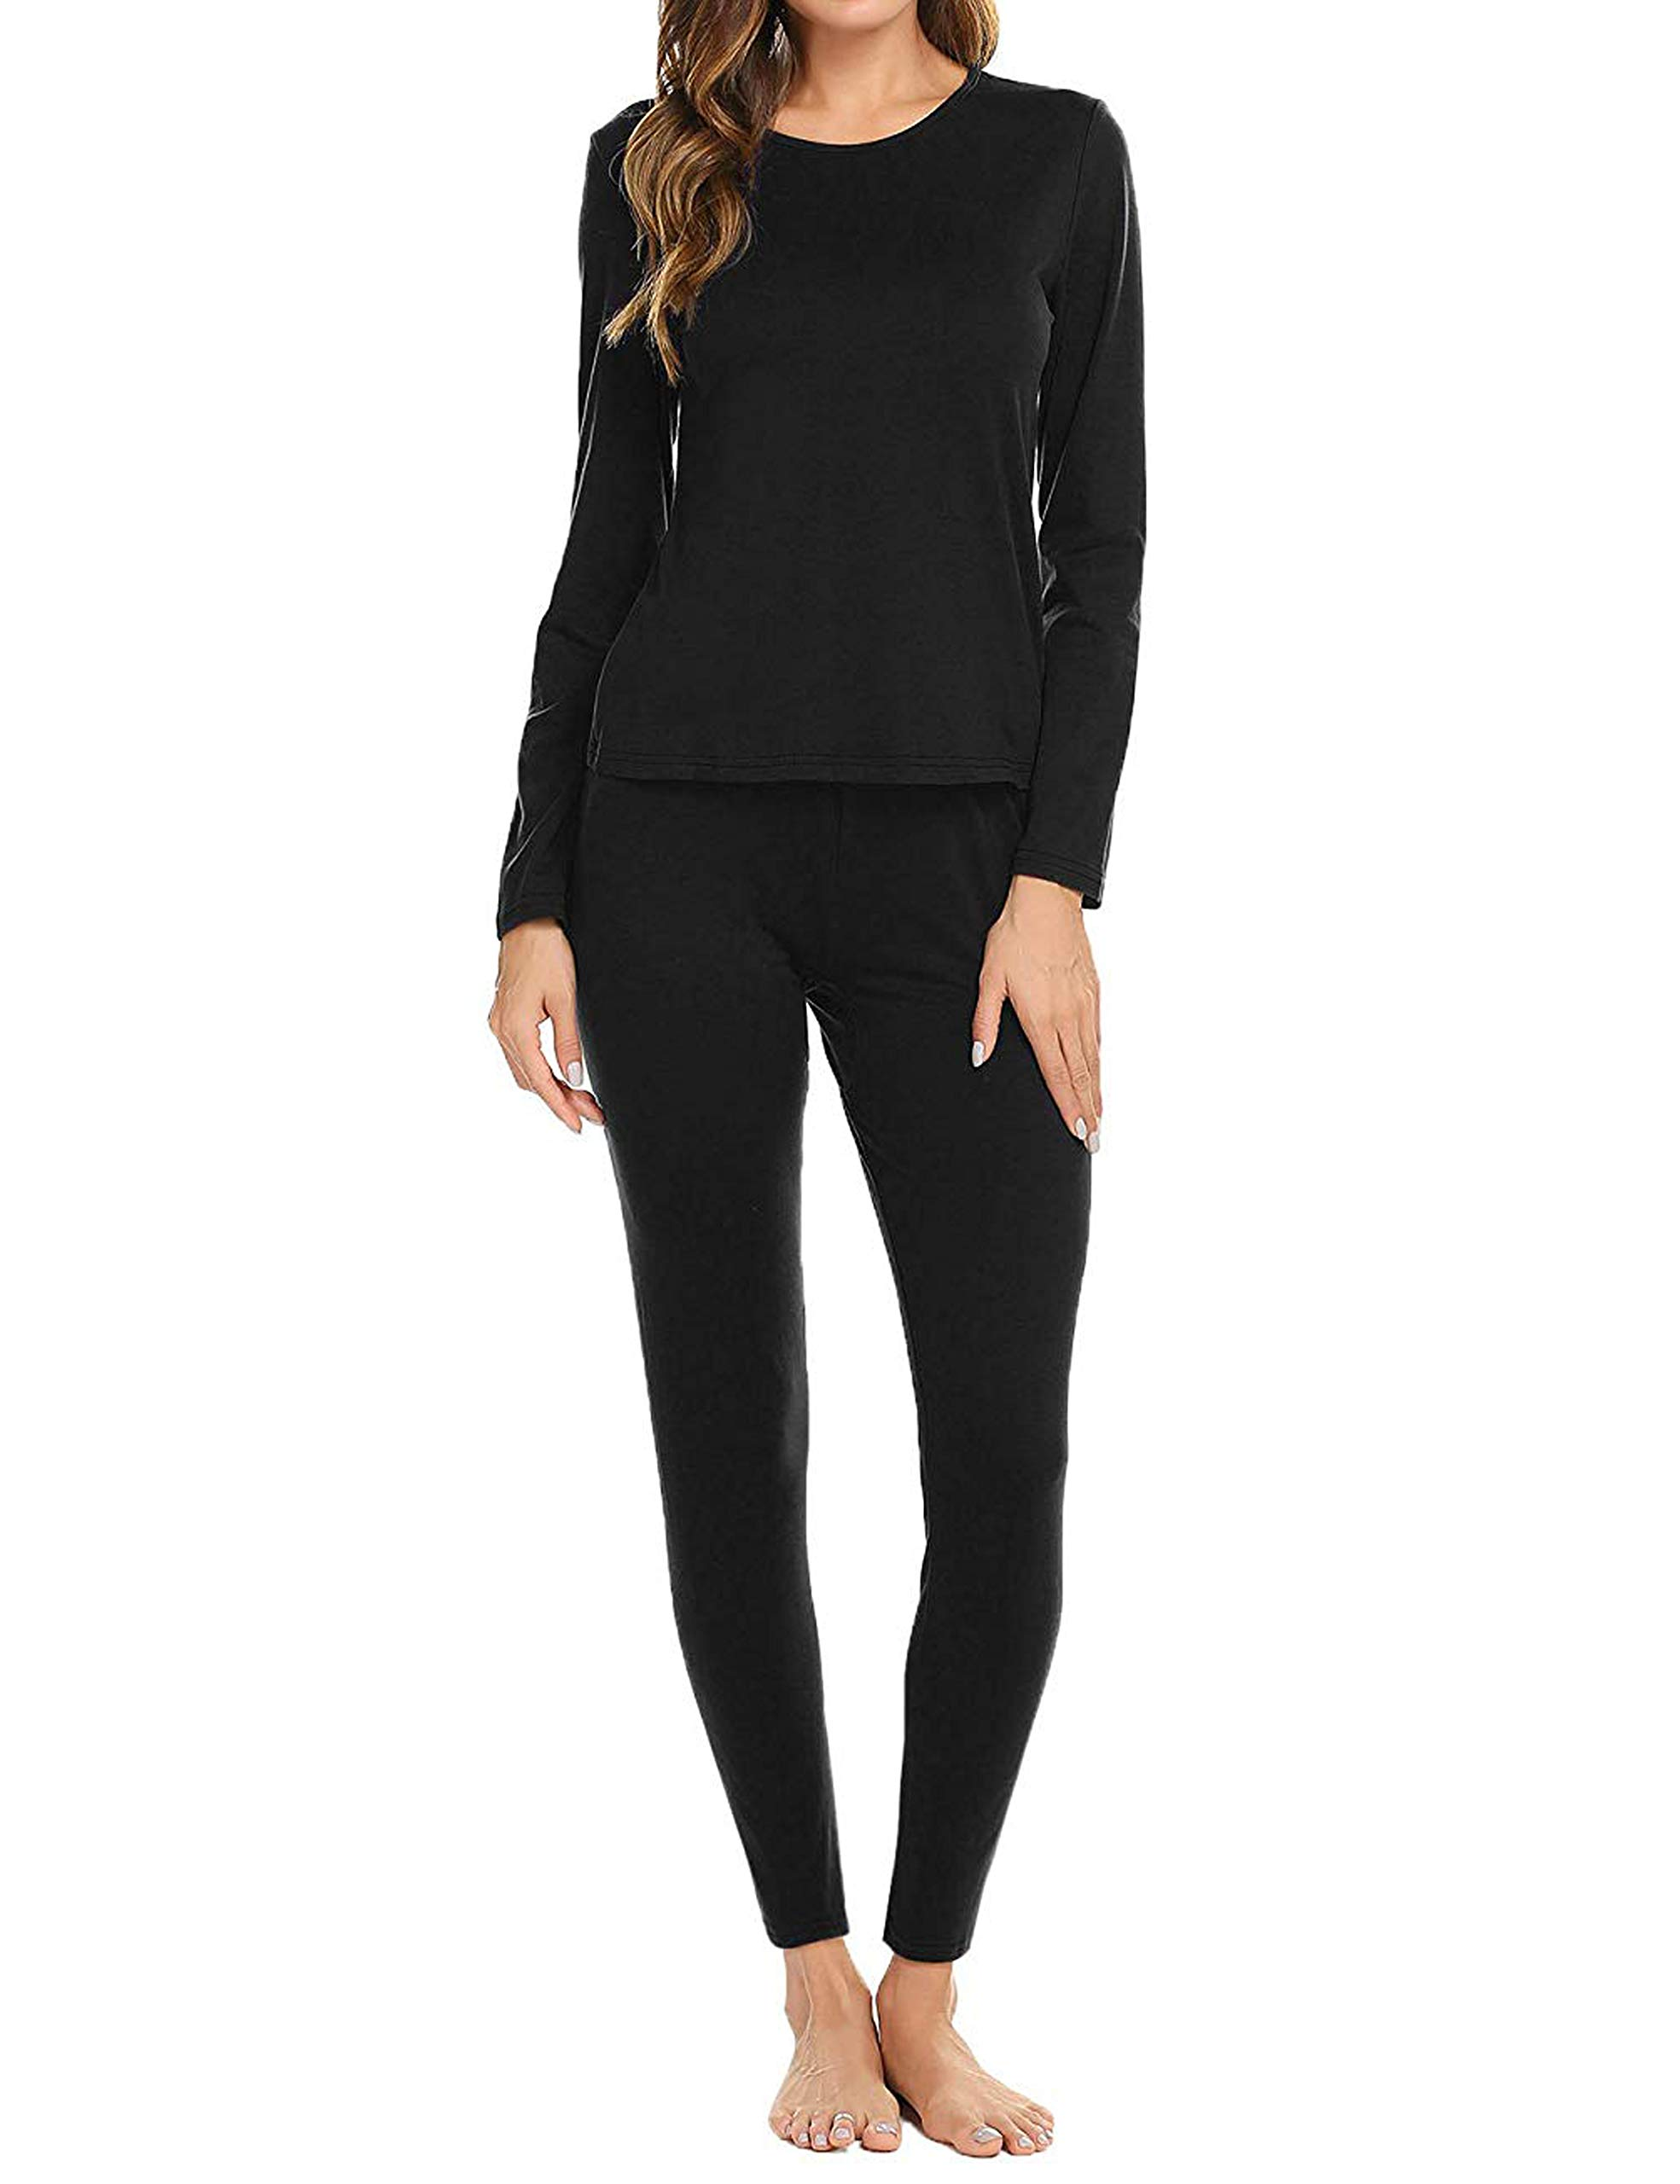 Aifer Women's Round Neck Thermal Underwear Set Long Base Layer for Winter